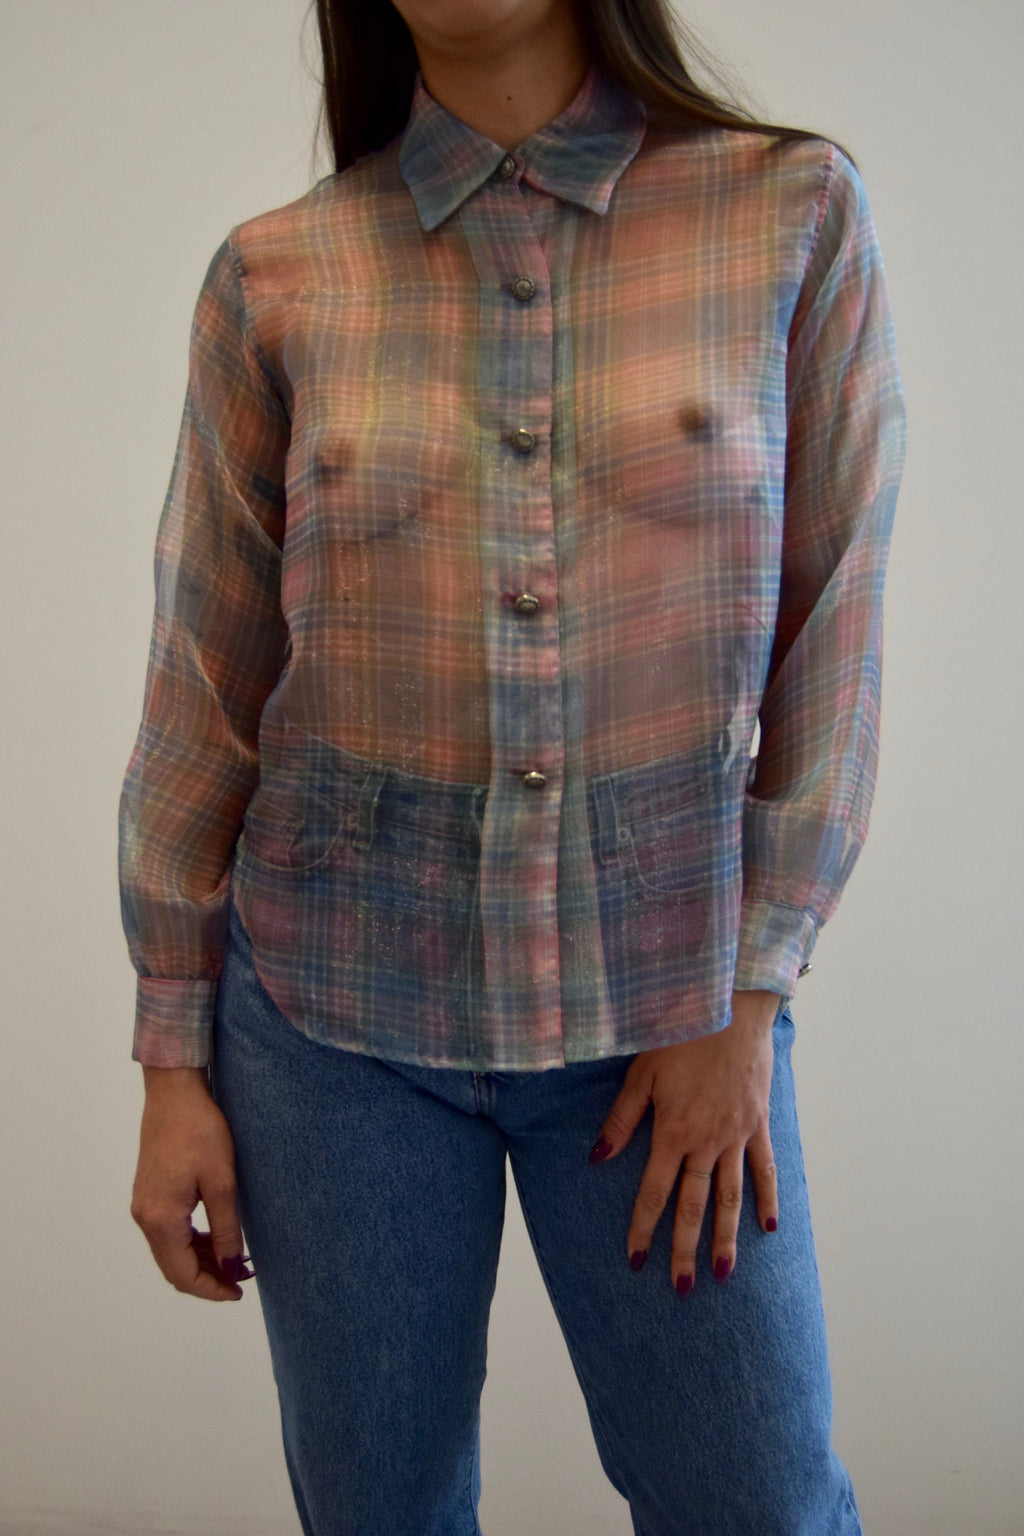 Sheer Pastel Plaid Top FREE SHIPPING TO THE U.S.